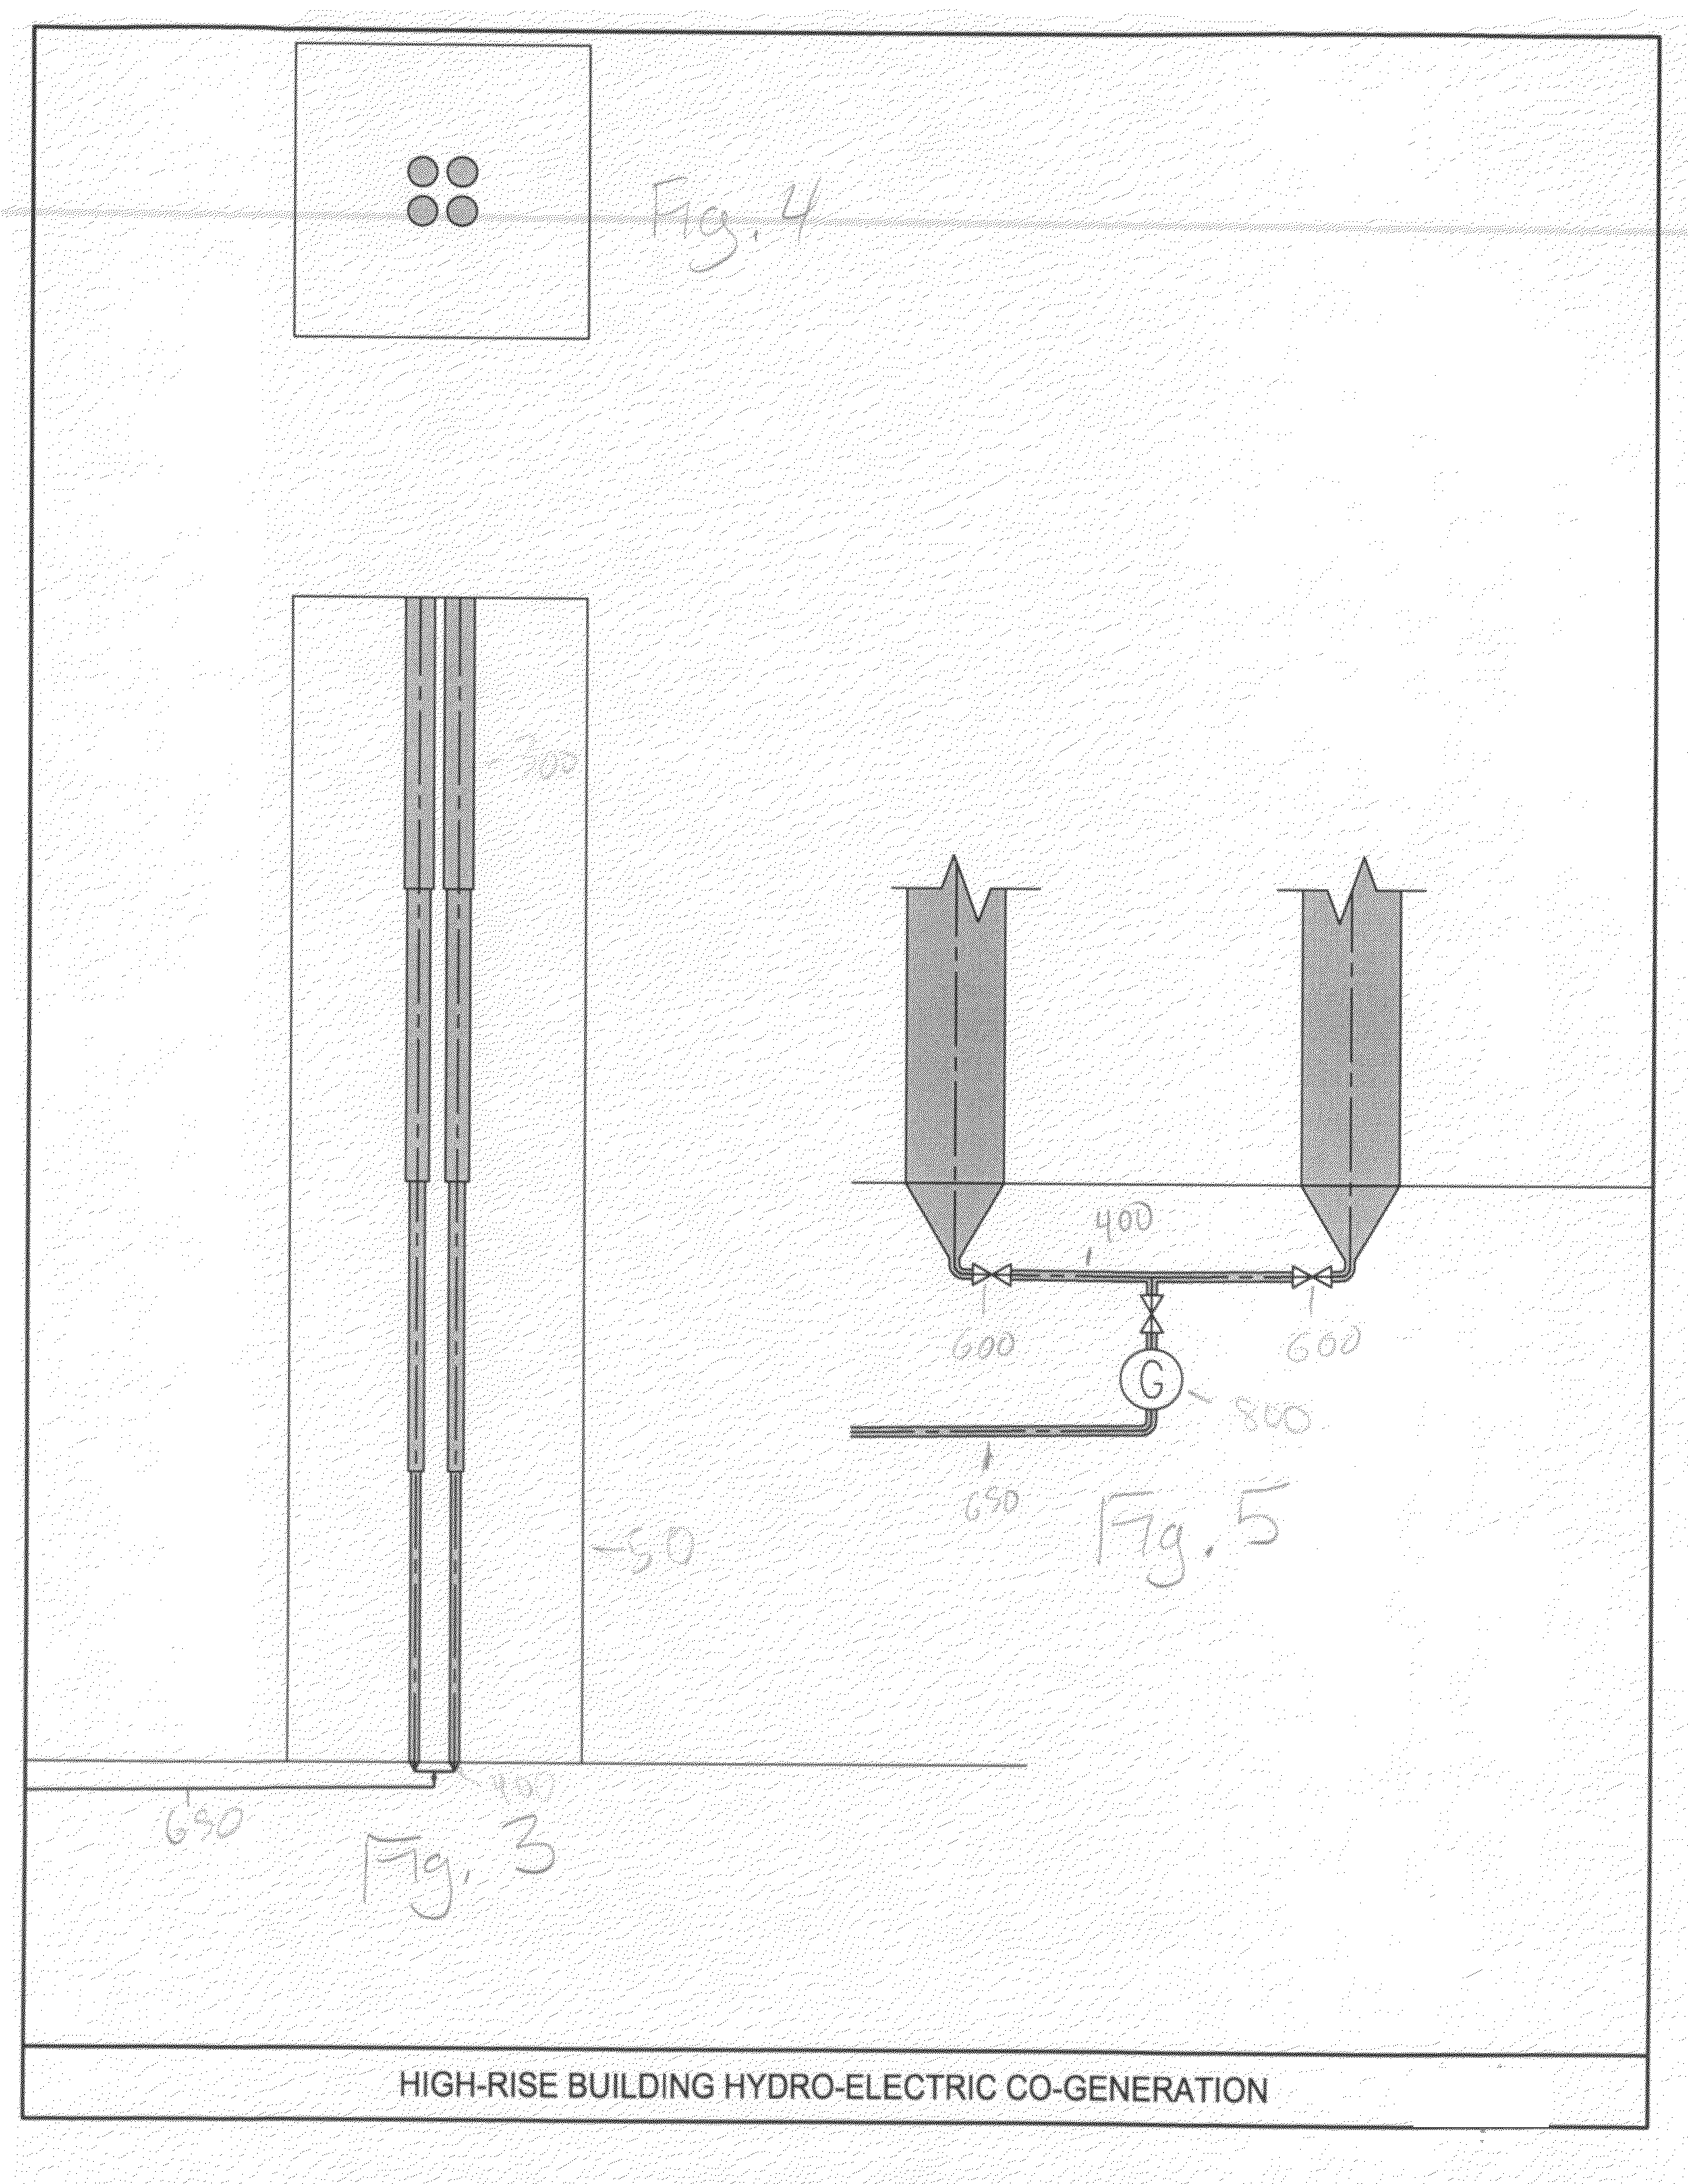 Electrical Drawing Of High Rise Building ndash The Wiring